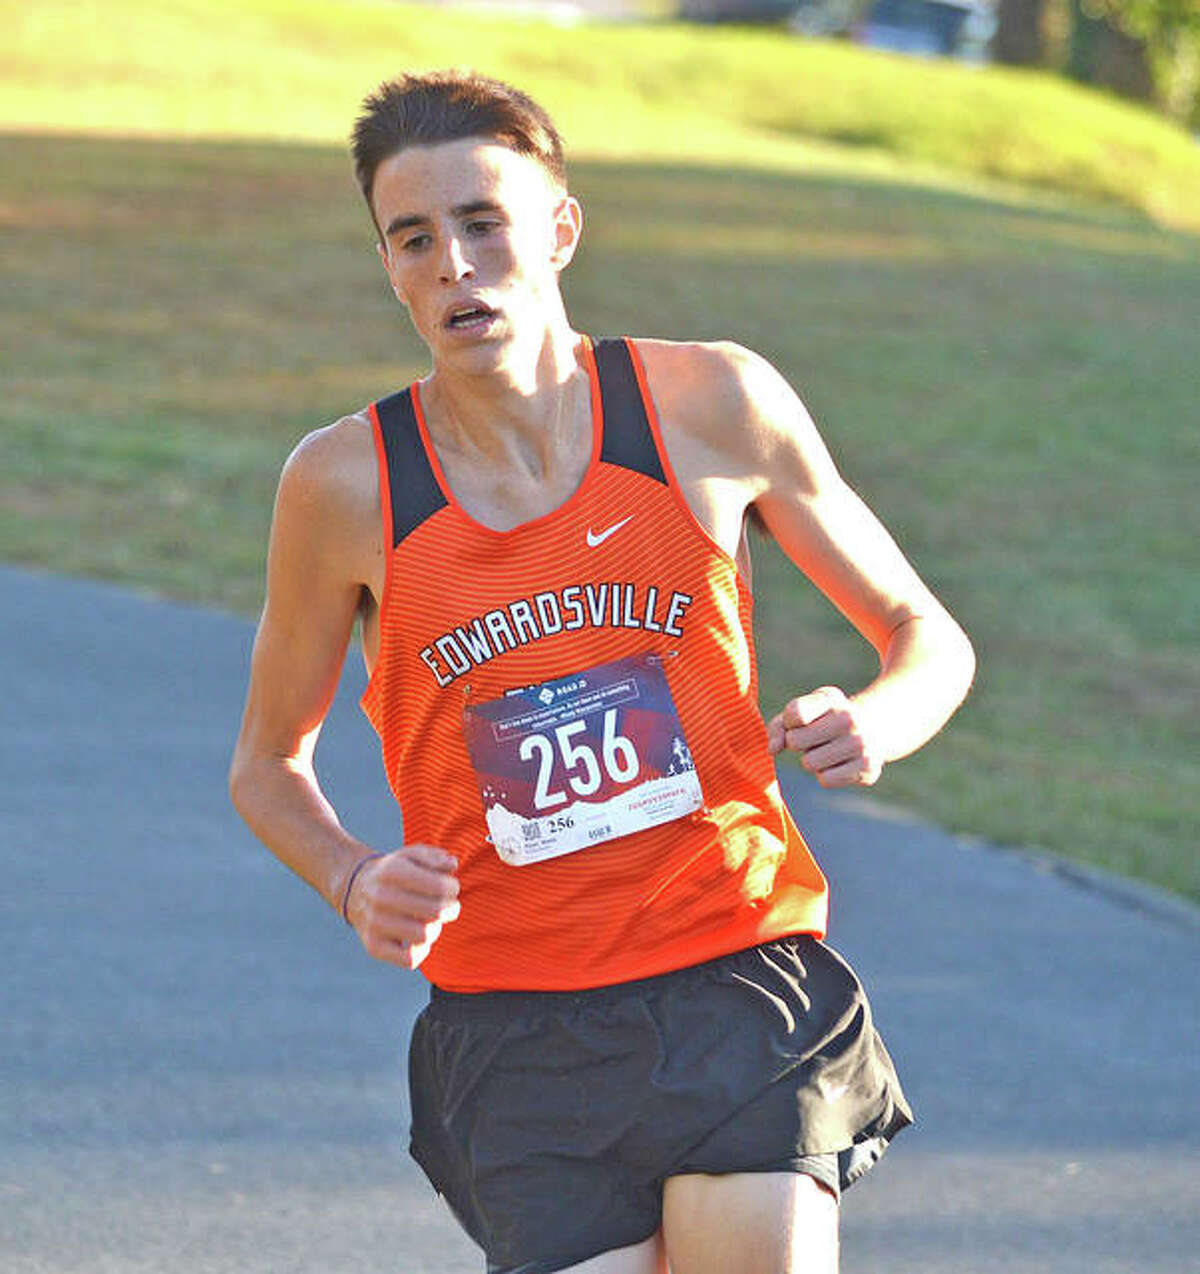 Edwardsville's Ryan Watts runs last year in the Madison County Large School Meet at Belk Park in Wood River.